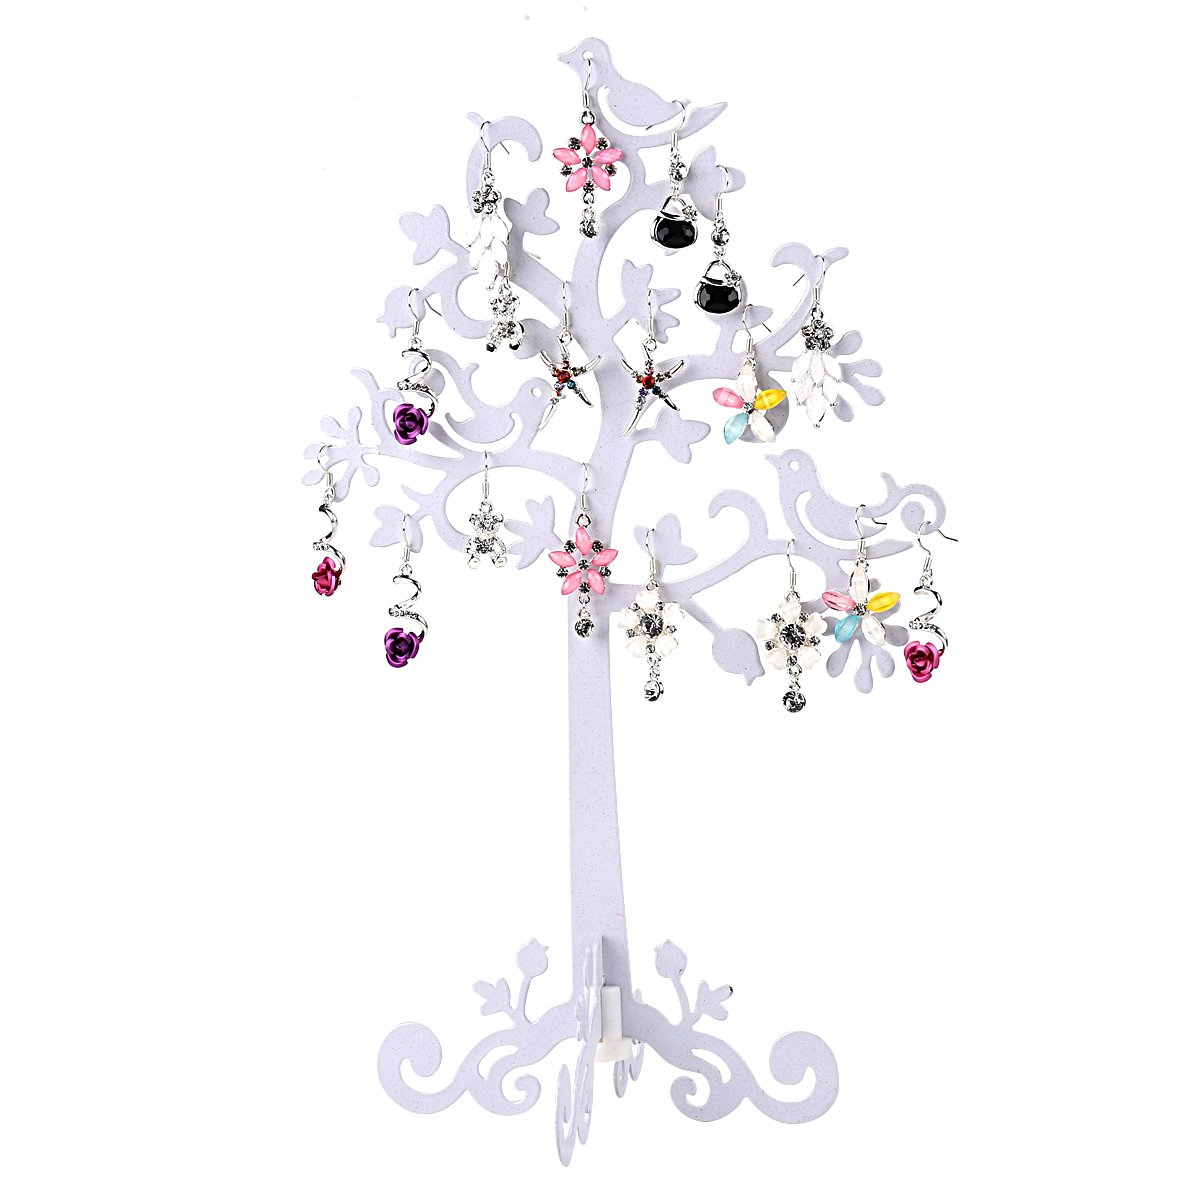 Jewelry Tree Display by Sky Piea, Metal Jewelry Stand Organizer Holder for Earrings, Bracelets, Necklaces (White)